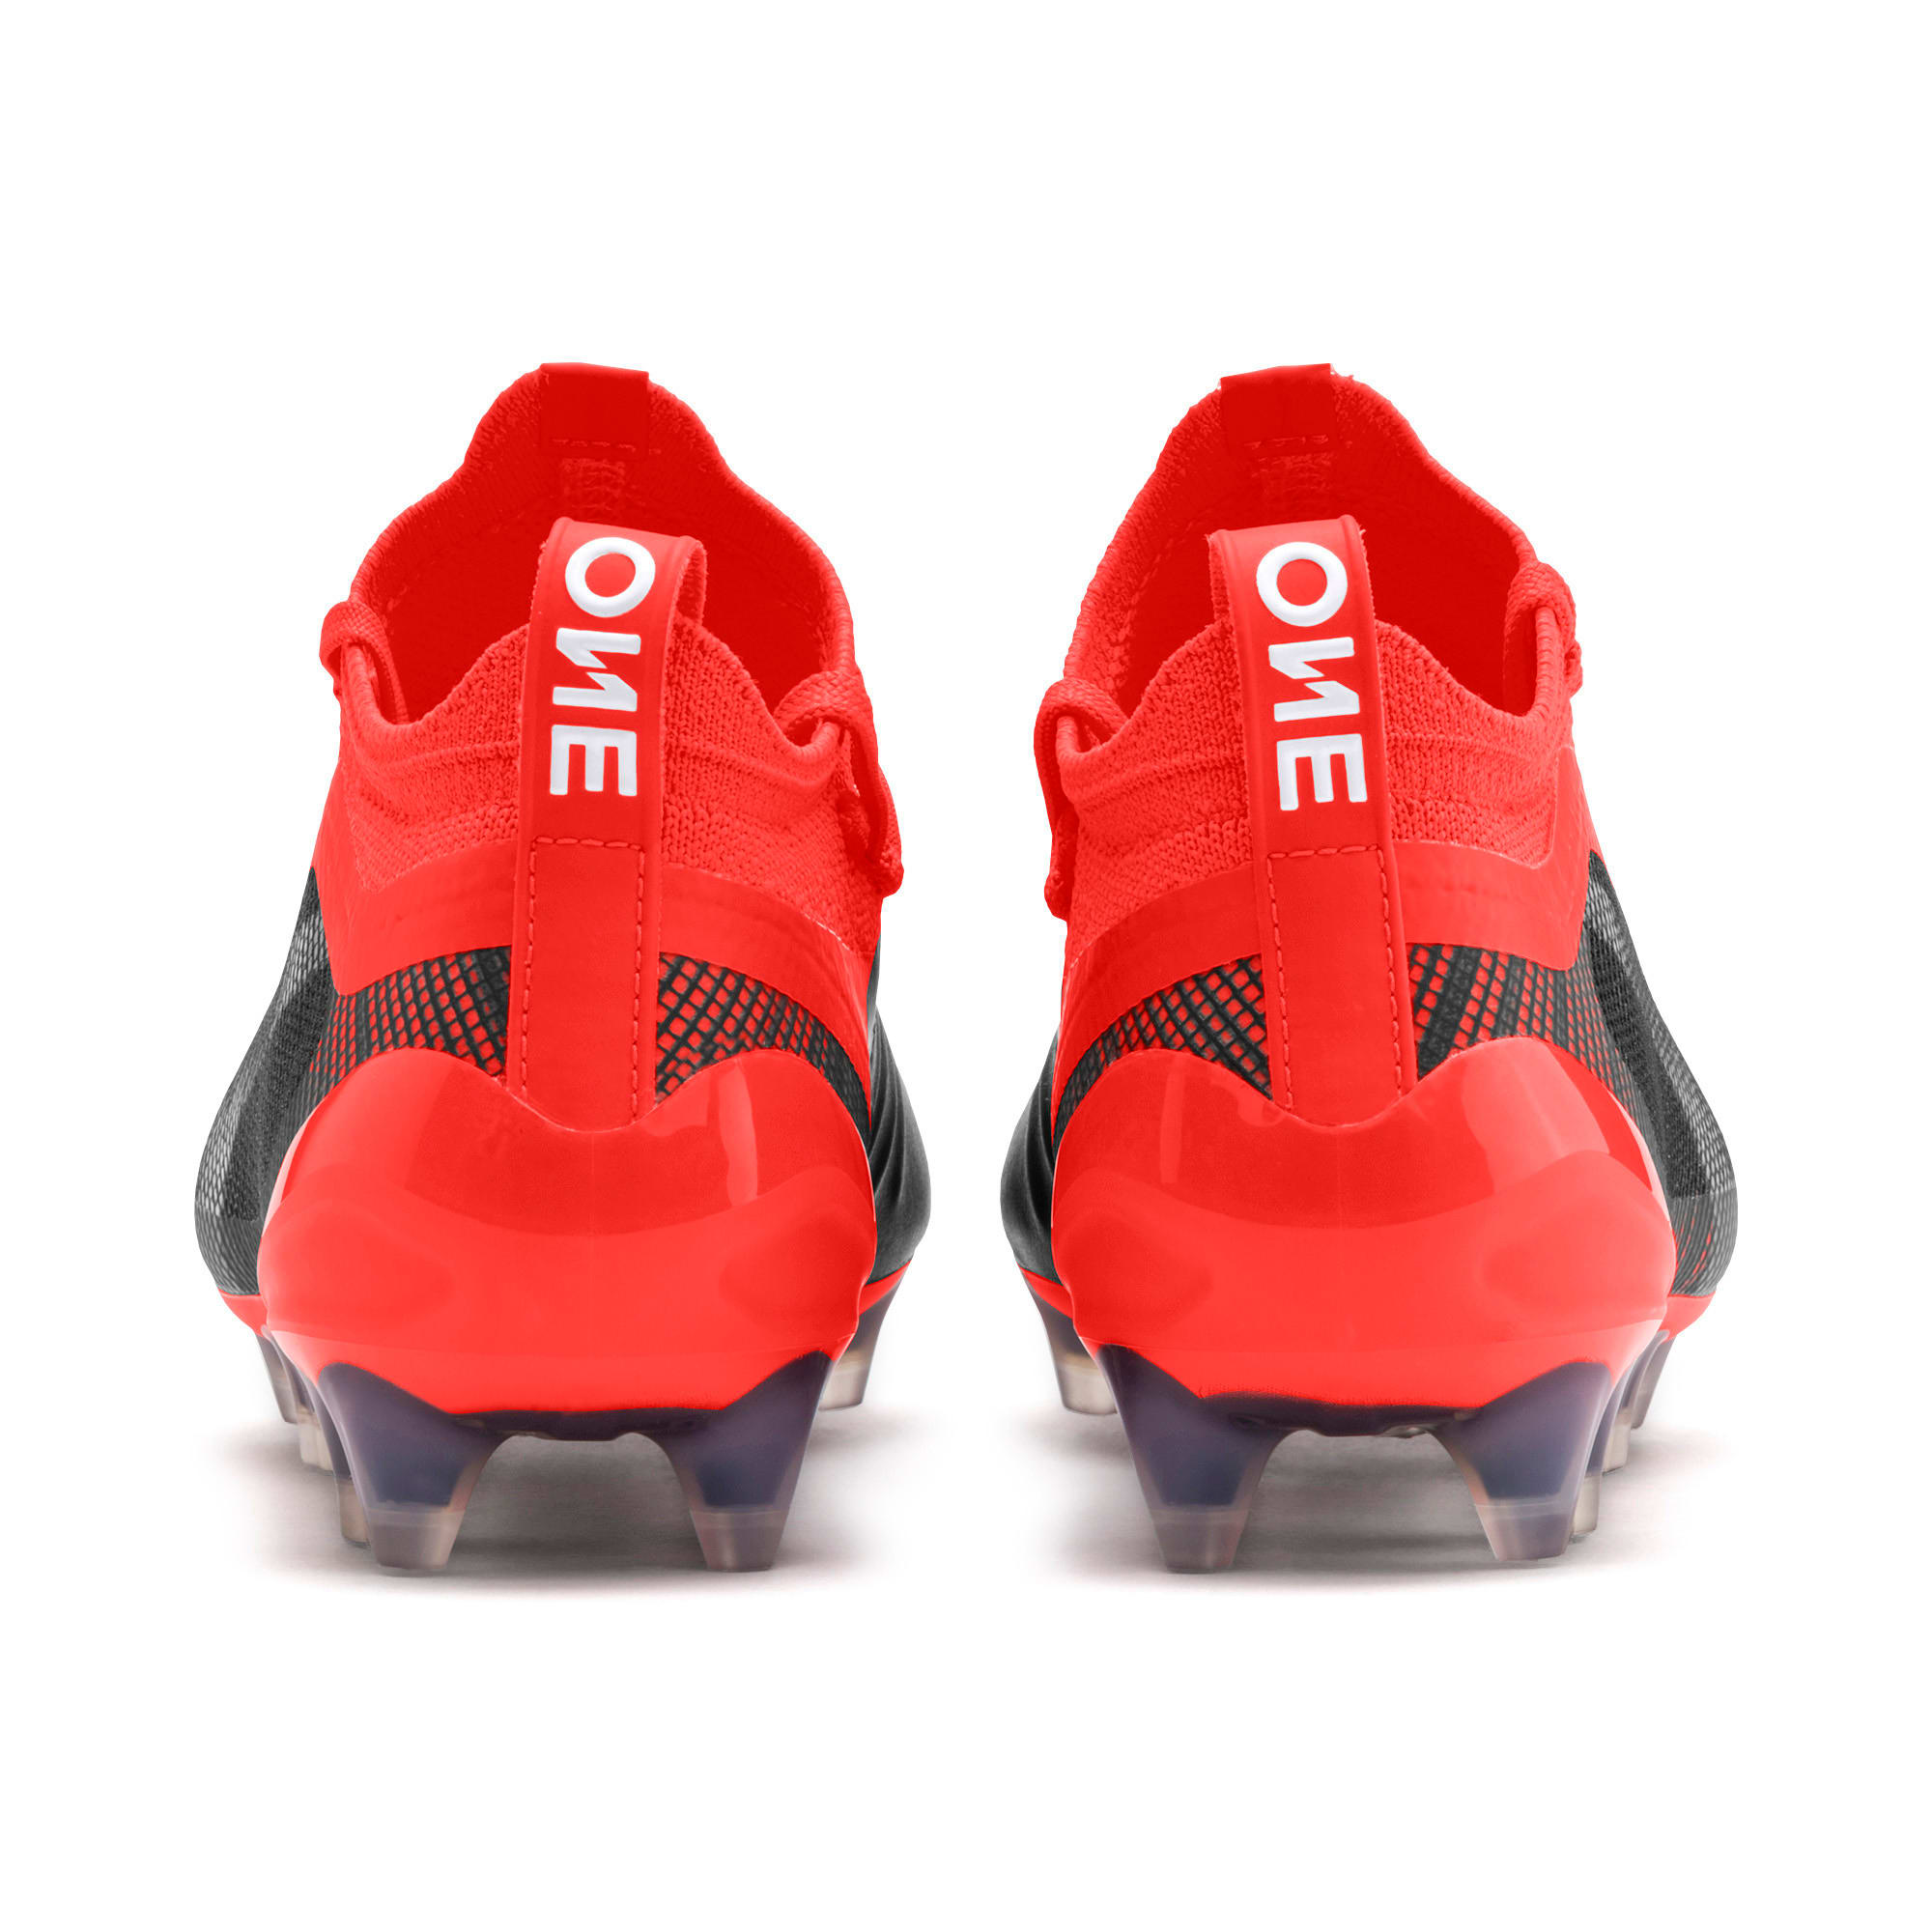 Thumbnail 3 of PUMA ONE 5.1 Youth Football Boots, Black-Nrgy Red-Aged Silver, medium